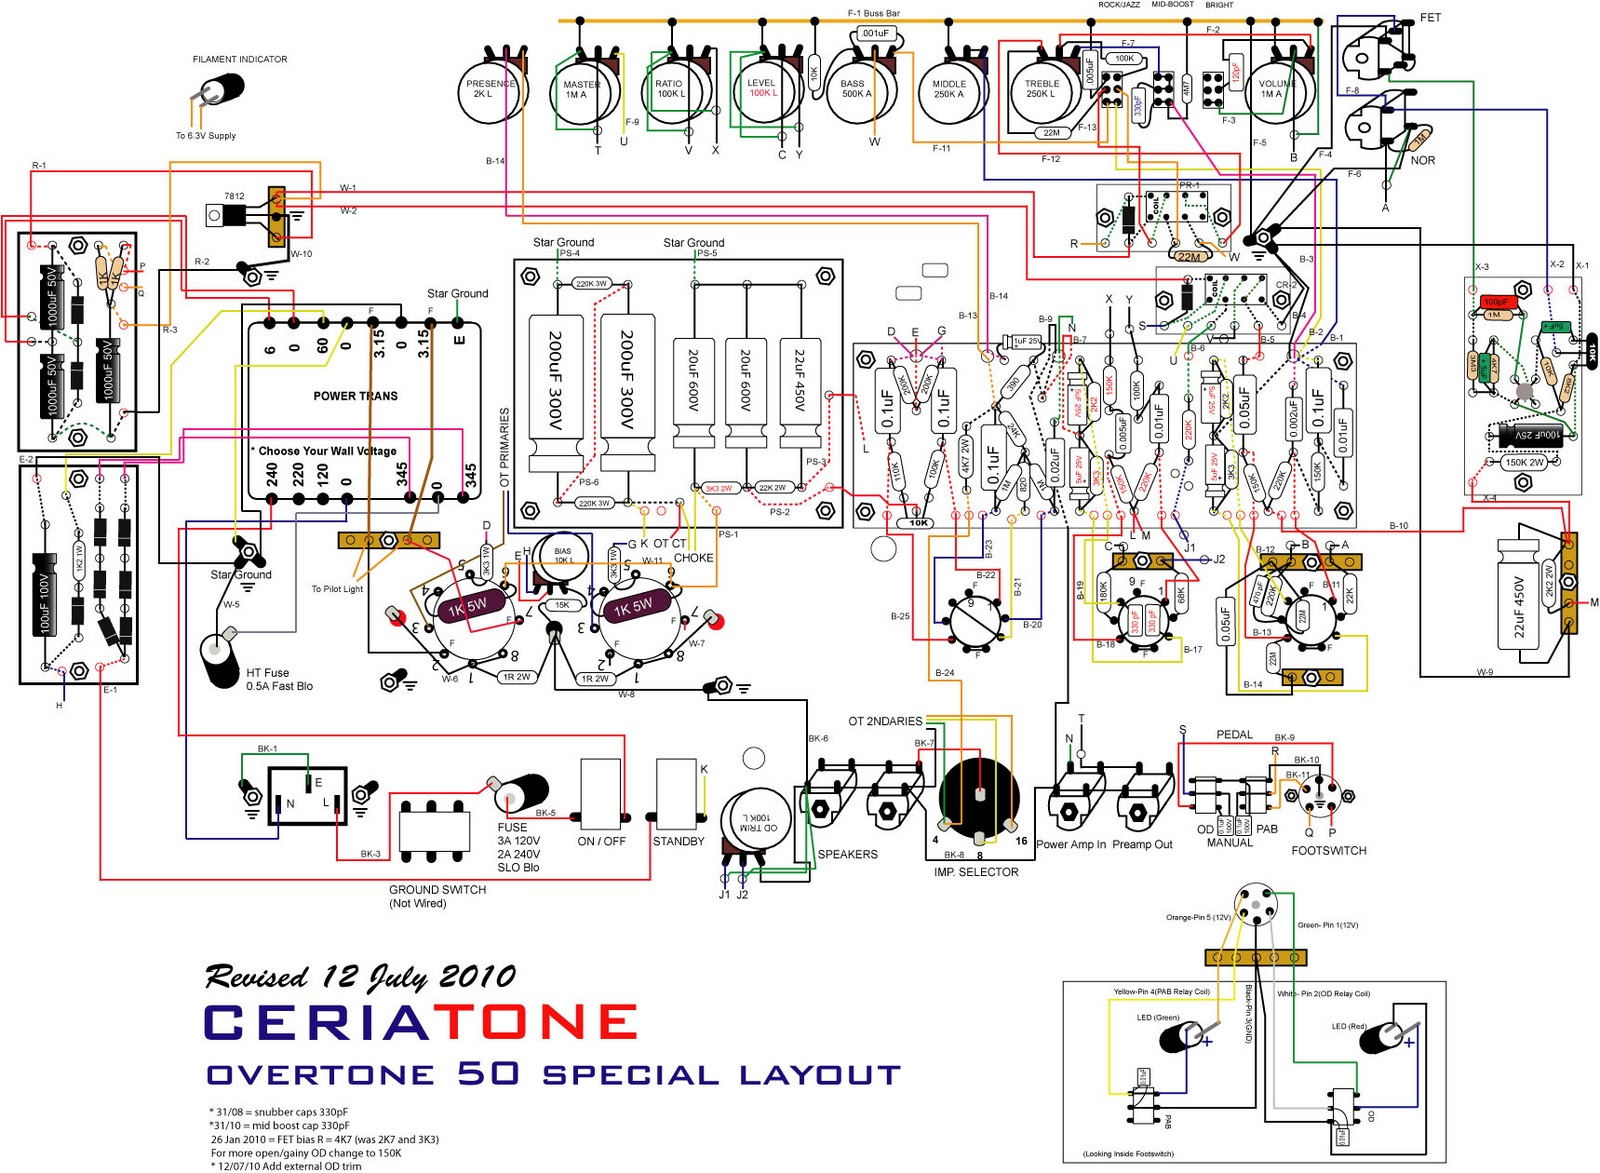 Here's a layout for the Overtone Special 50 (A Dumble Overdrive Special 50W  Clone):